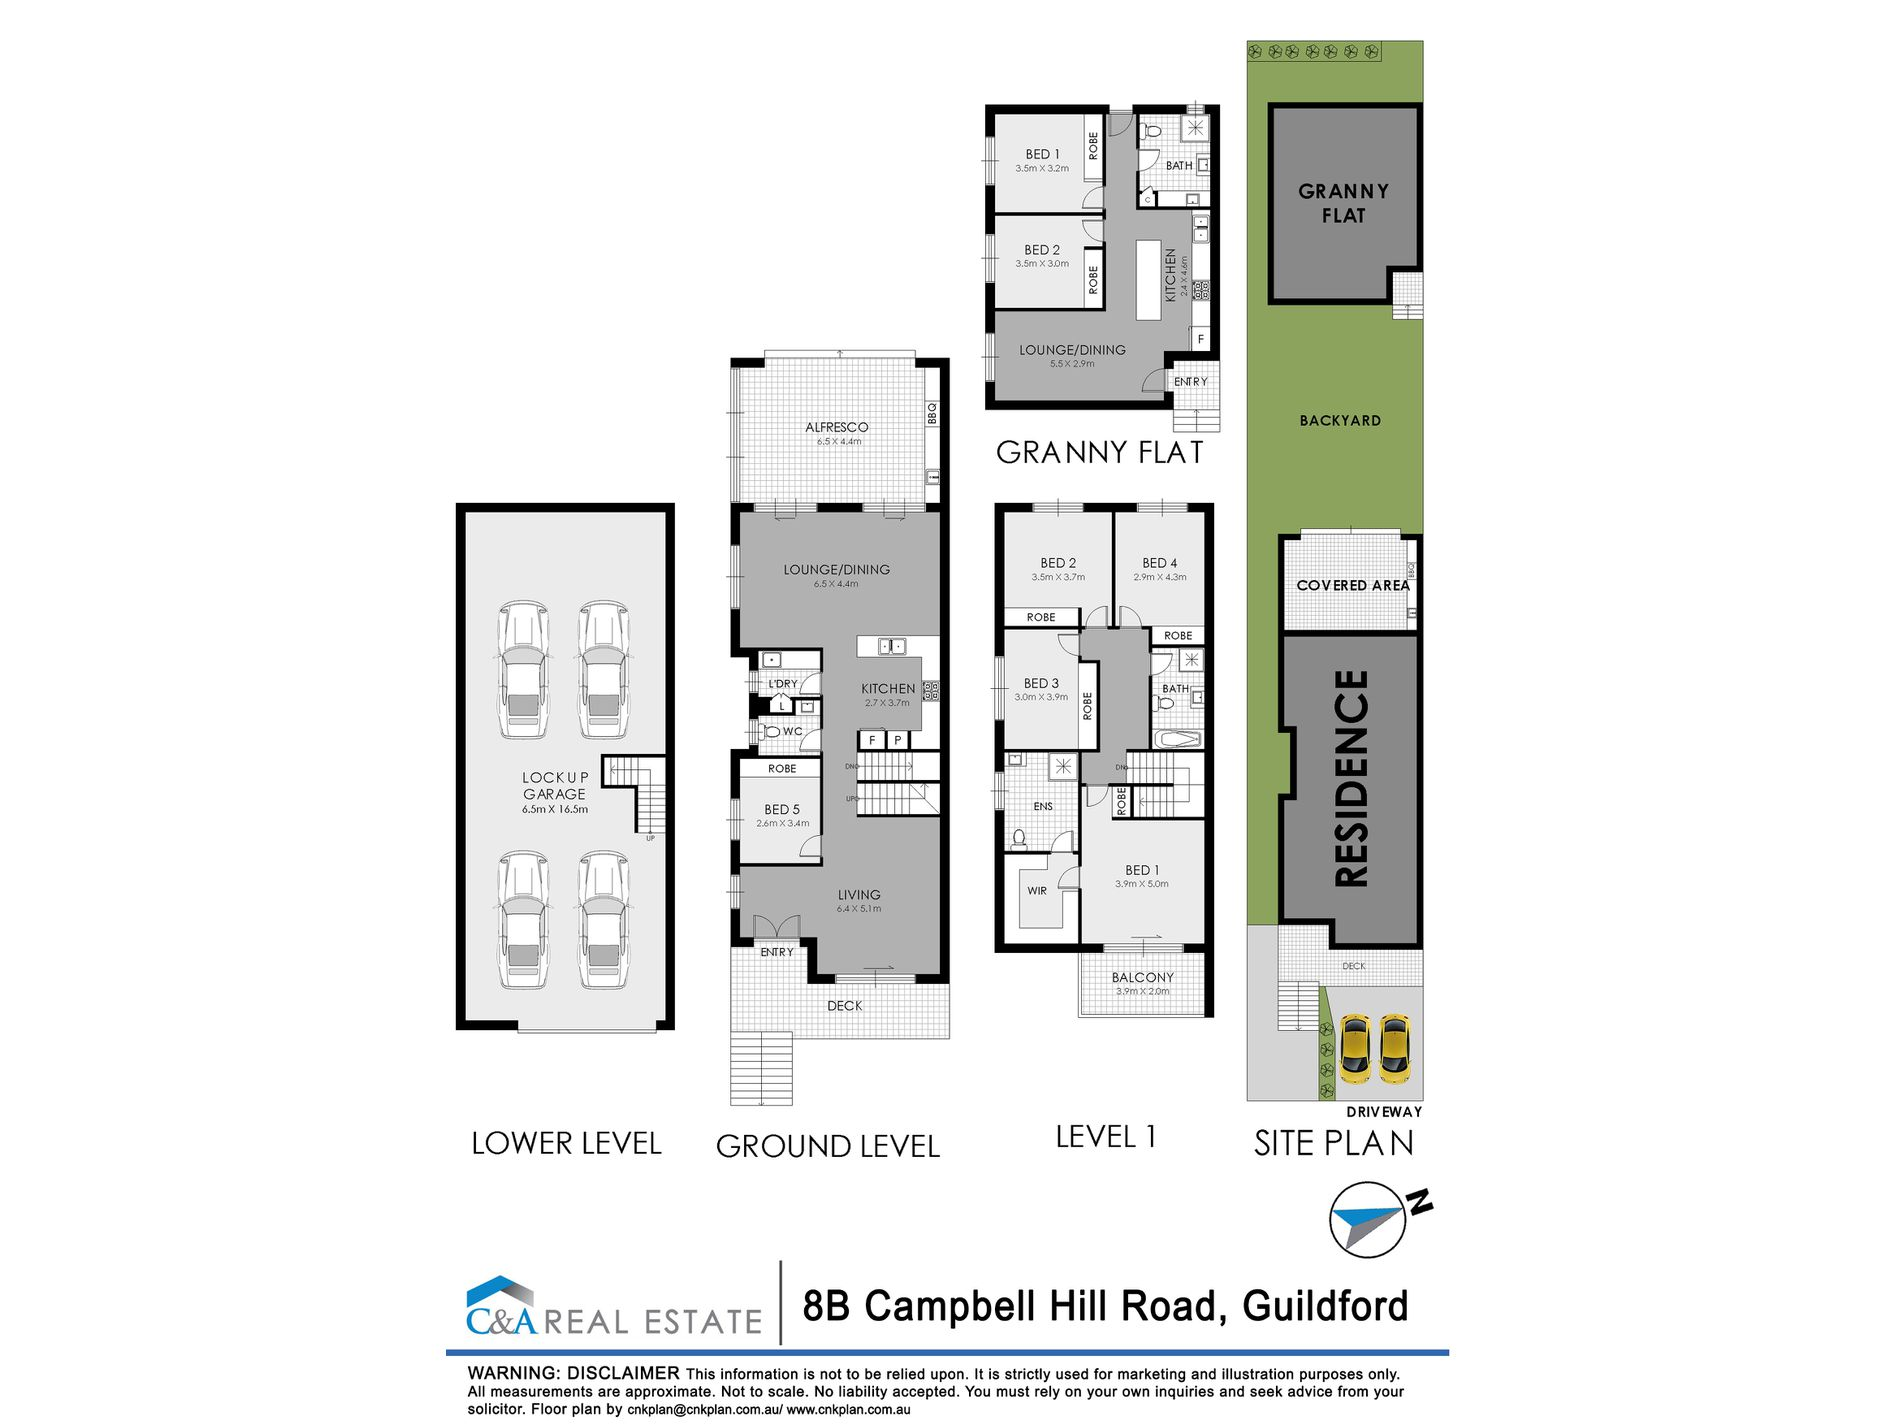 8b Campbell Hill Rd, Guildford